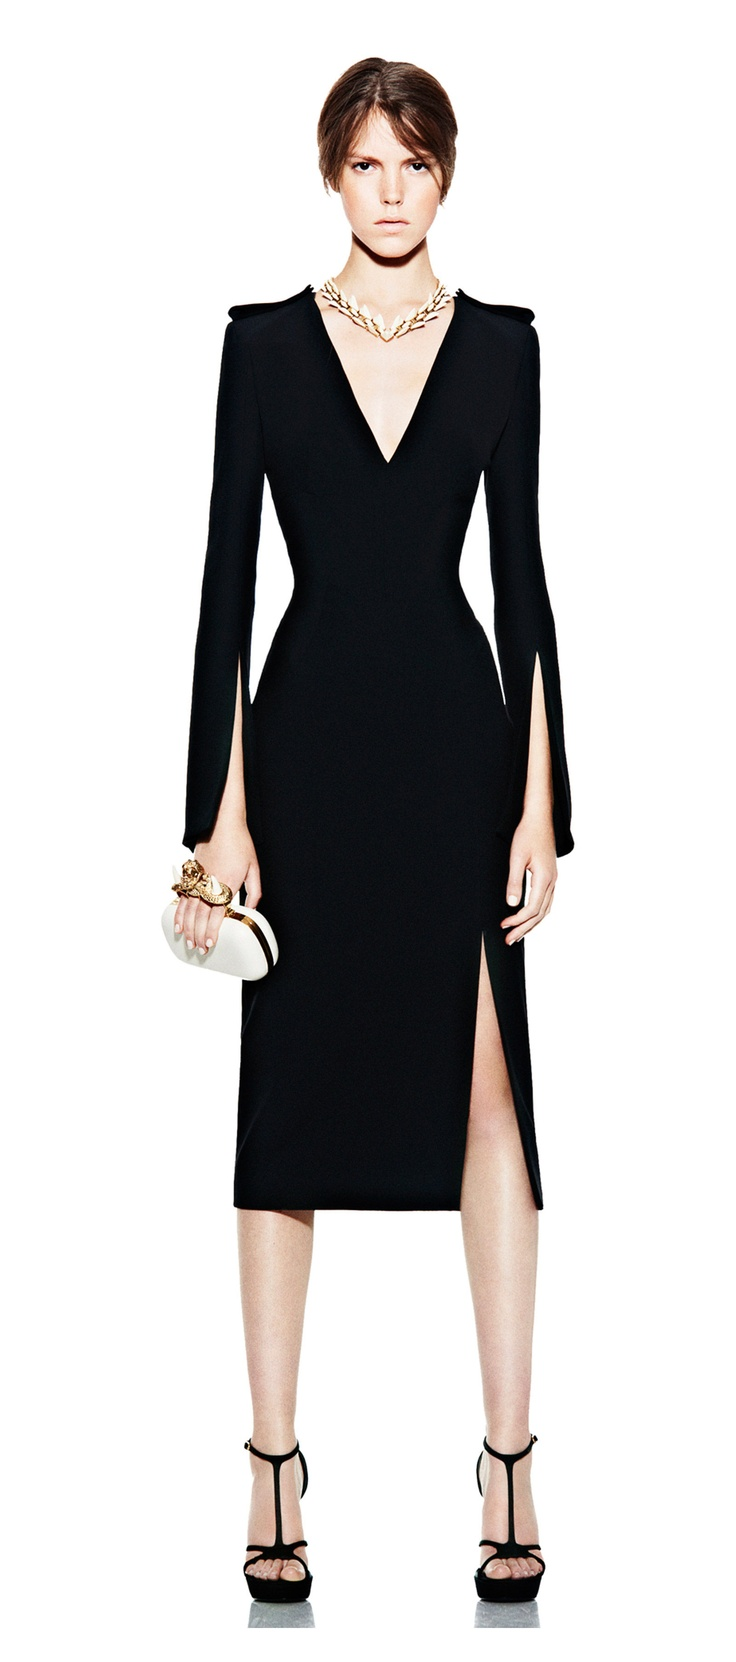 Alexander McQueen: Black Military Pencil Dress £1,250.00 - A structured look for the powerful business woman *secretly hopes its her in 5 years*